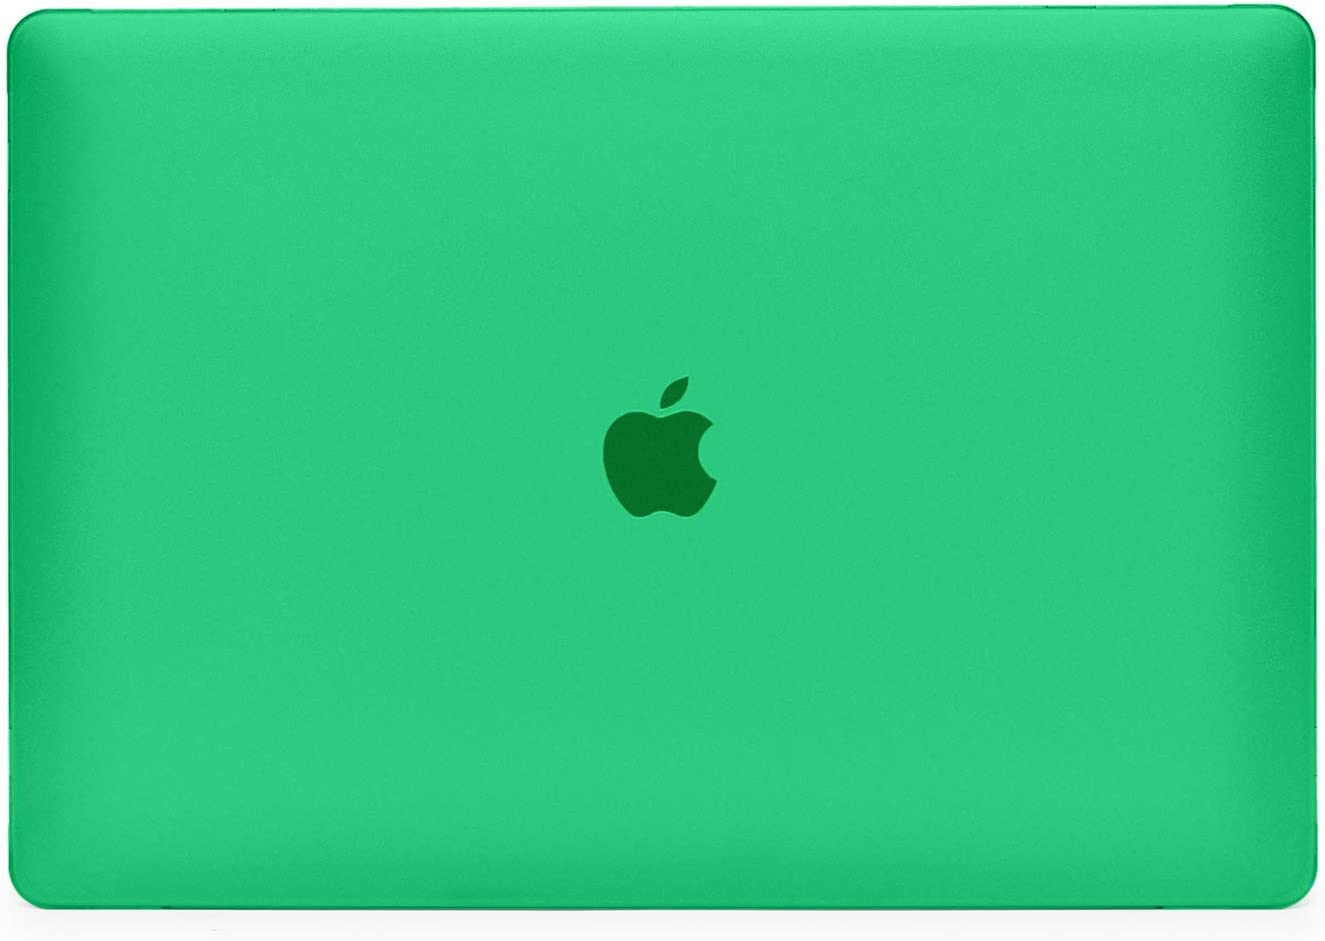 """iPearl mCover Hard Shell Case for 15-inch Model 2016 A1707 / 2018 A1990 MacBook Pro (with 15.4"""" Retina Display, with Touch Bar & Integrated Touch ID Sensor, Thunderbolt 3 / USB-C Ports) - Green"""